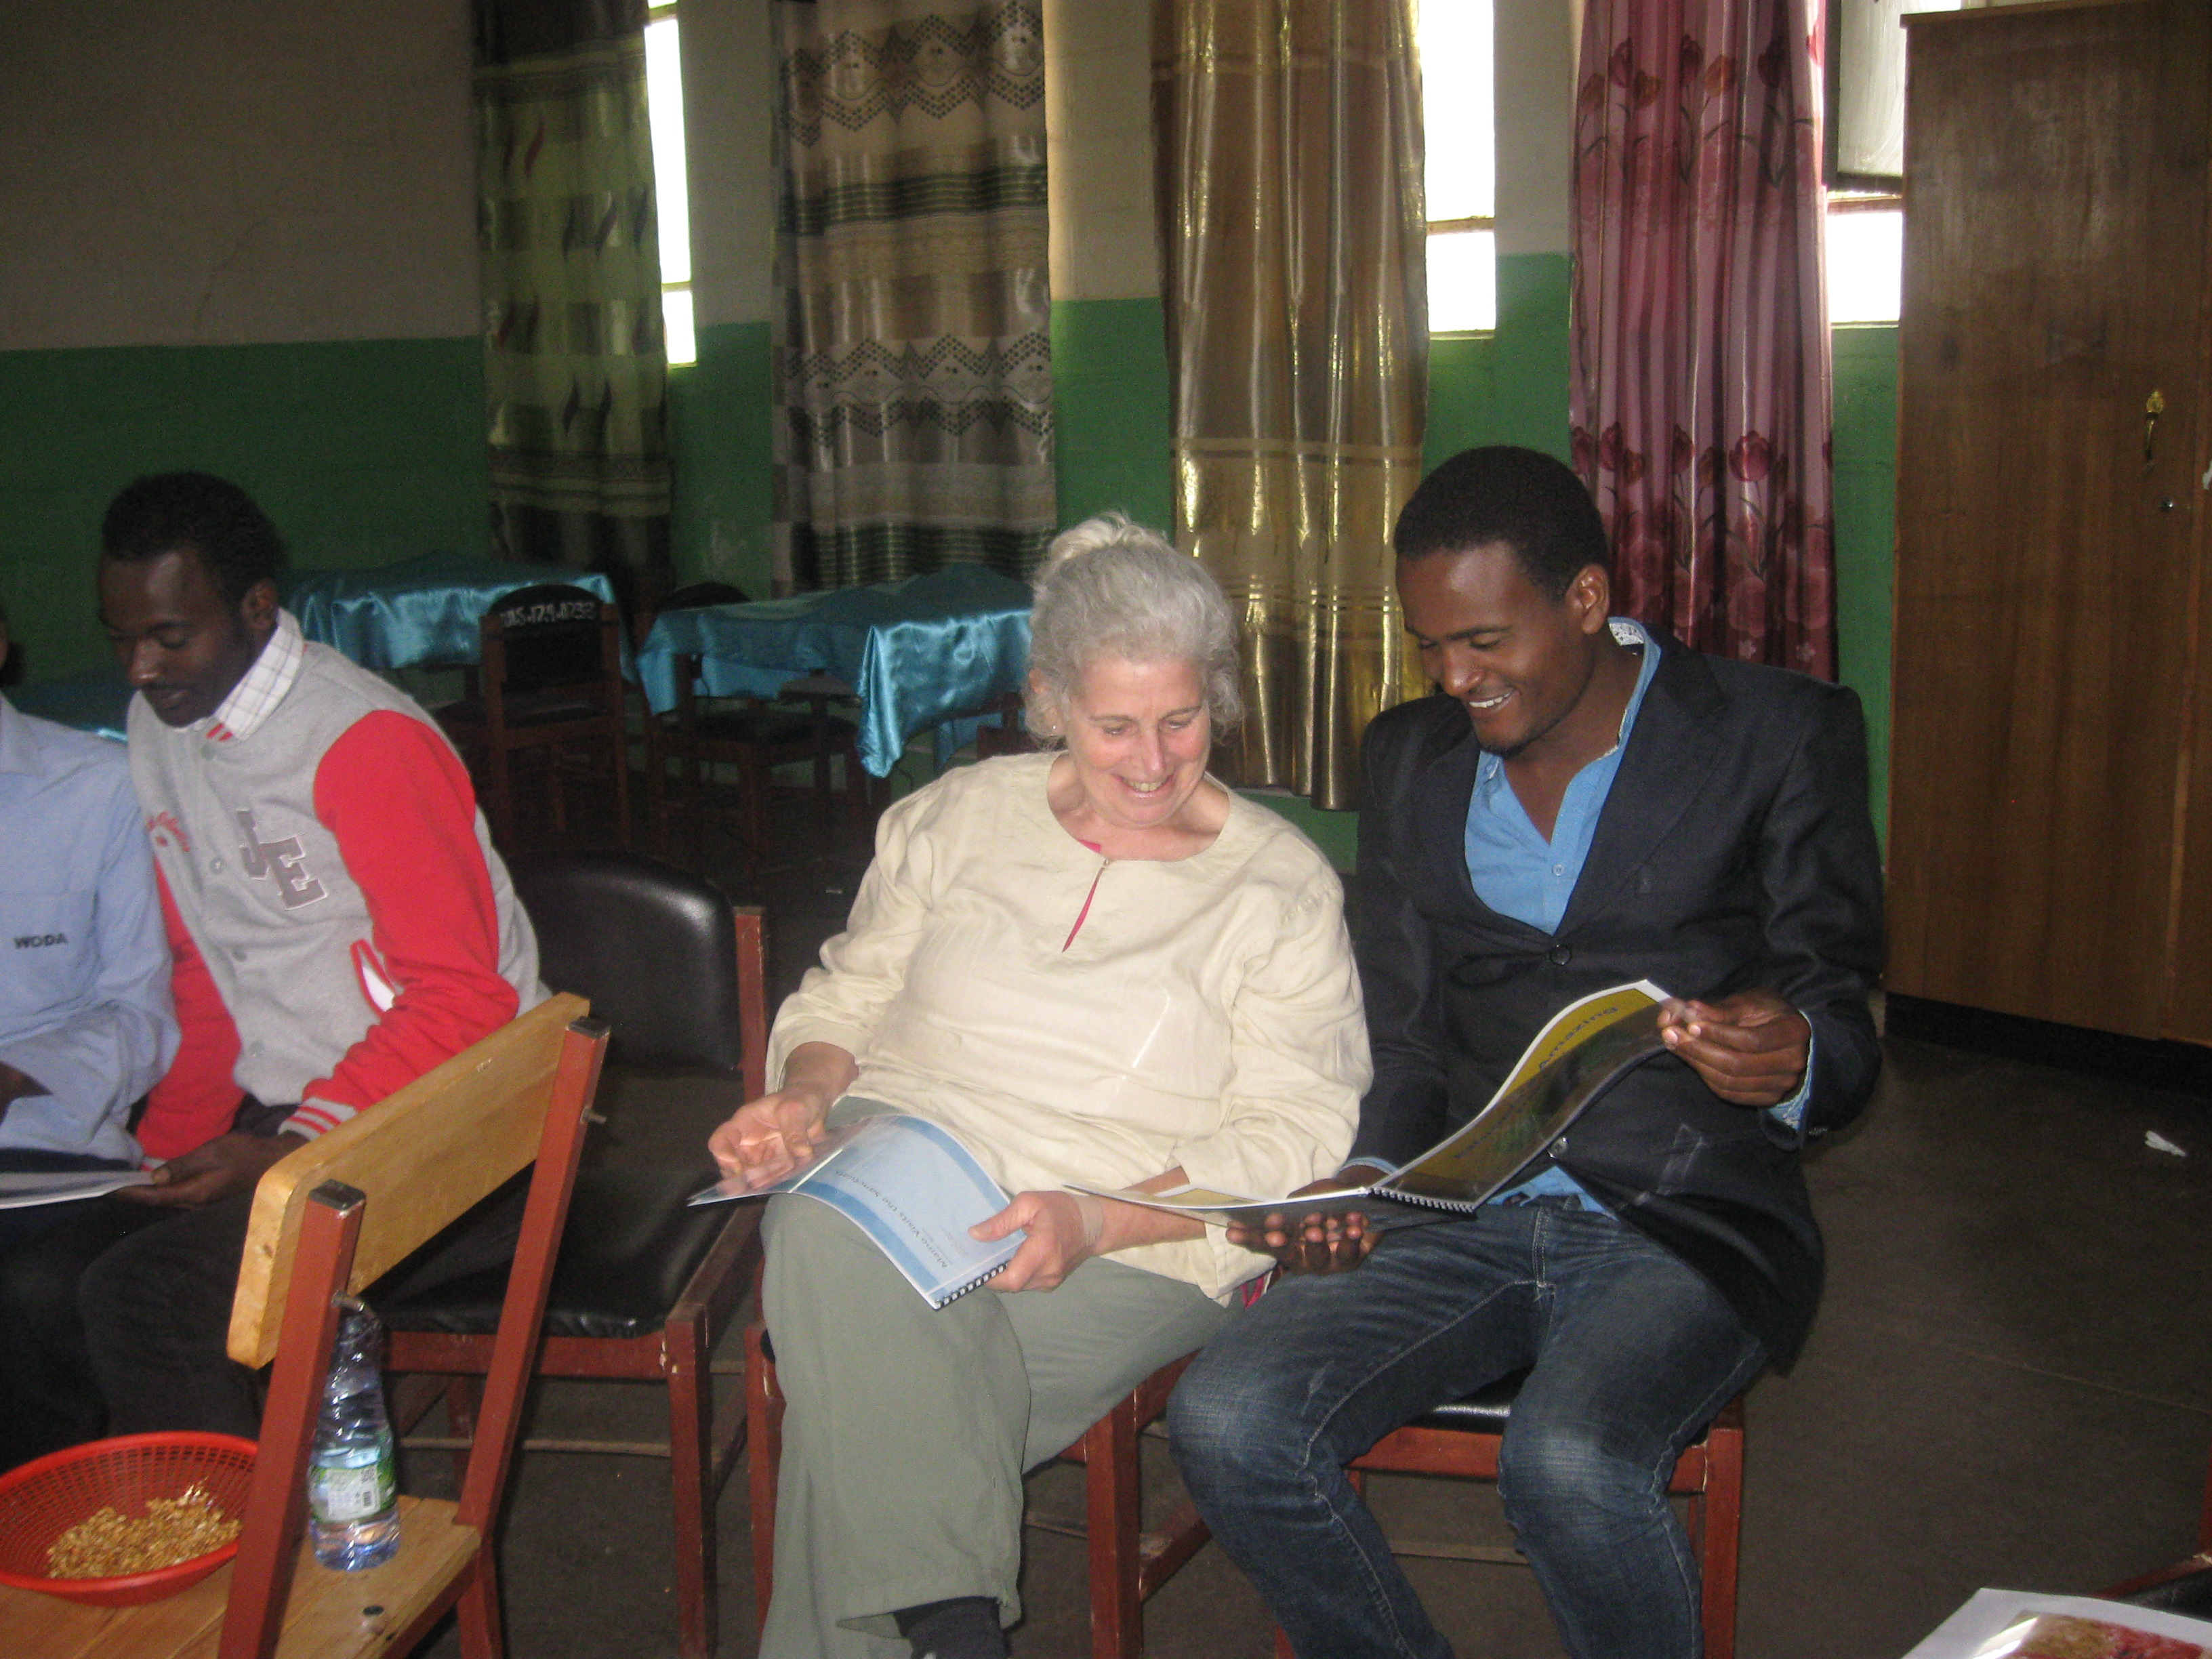 Professor Susan Rauchwerk in Ethiopia showing her children's book to locals.